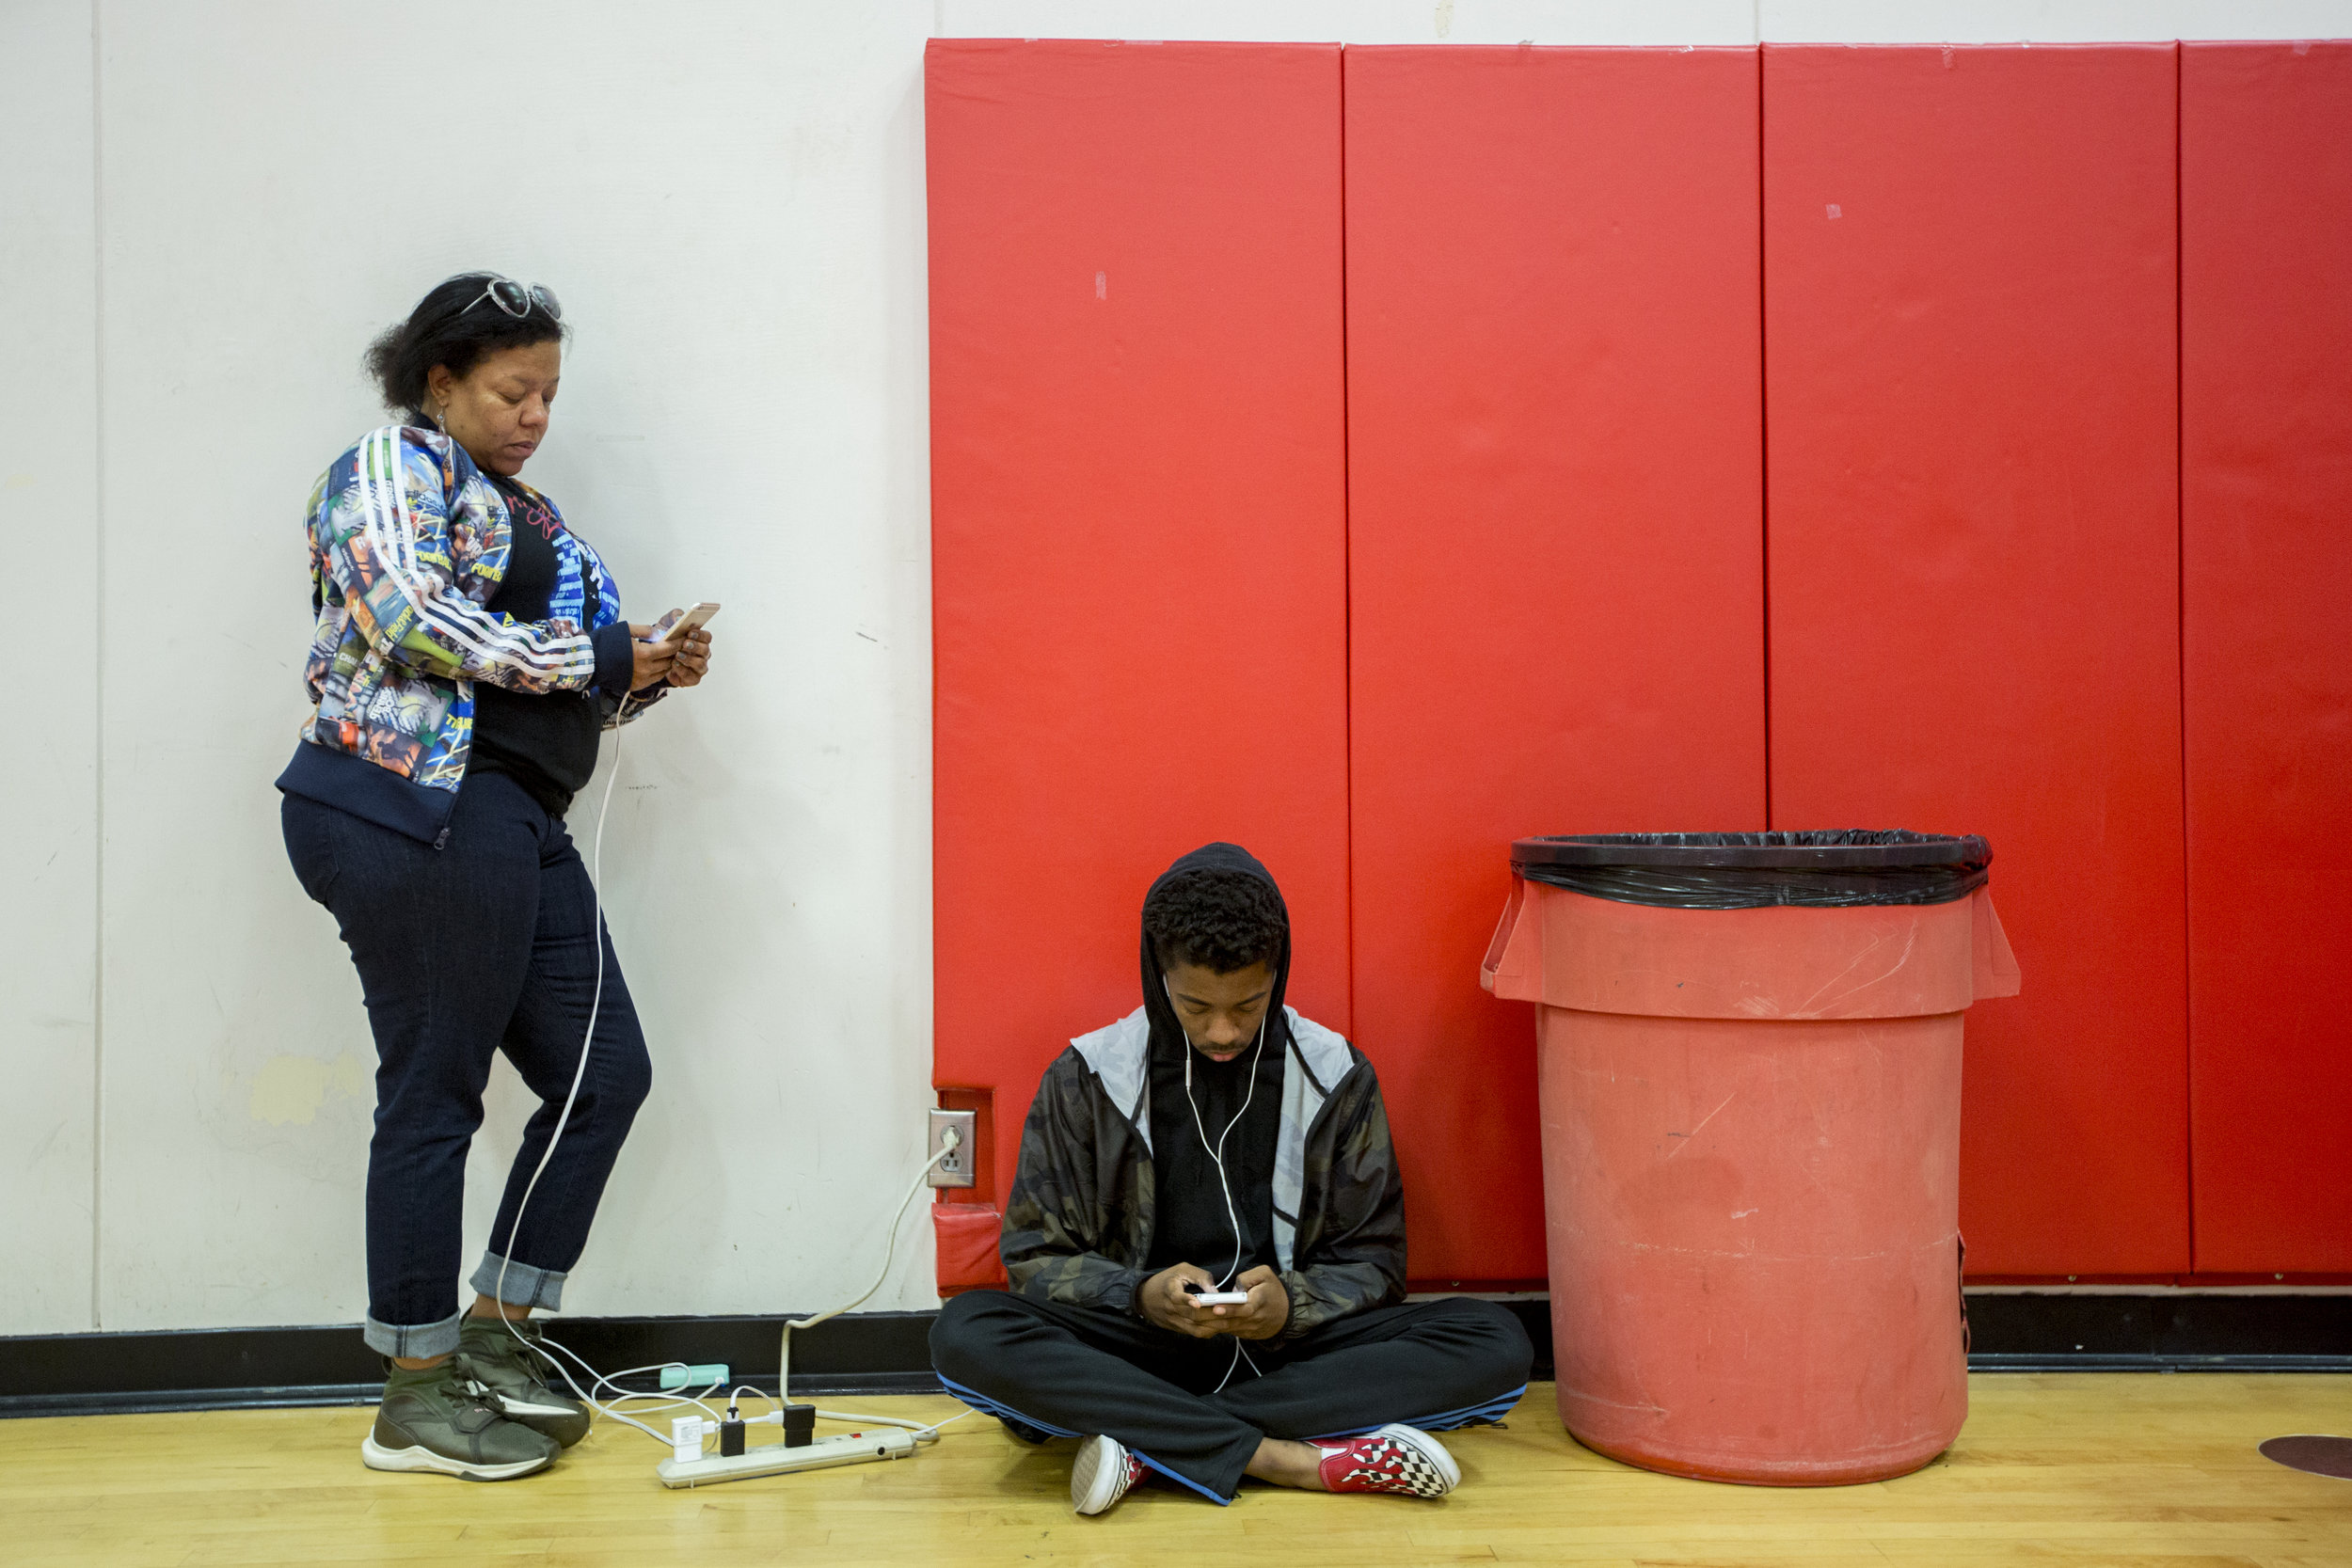 "Jenyce Johnson and her son, from Thousand Oaks, charge their phones and stay connected at the Woolsey fire evacuation center set up at Los Angeles Pierce College on November 9, 2018 in Woodland Hills, Calif. Already shaken by the Borderline Bar & Grill shooting that took place 5 blocks from where she lives and as a student at Moorpark College who is in the middle of studying for exams, Johnson admitted that she was not tuned in to how close the fire was to her home until she was notified by a friend around 1 a.m. to evacuate. As she opened her door to go pack up the car to evacuate, Johnson said, ""All you could see was red from the fire and then you could actually see the fire coming down, crawling down, the hill."" While Johnson appeared to be handling things well, she shared that both tragedies are psychologically heavy to deal with and too much to carry all at once. Johnson said, ""One tragedy and then another tragedy in the same area is a lot. I thought it was the third safest, quote unquote, city in America, but you know even in the safest places in America ill things can occur."" The last time she checked-in her area was still under a mandatory evacuation, but she has no idea if her home is safe. (Jose Lopez)"